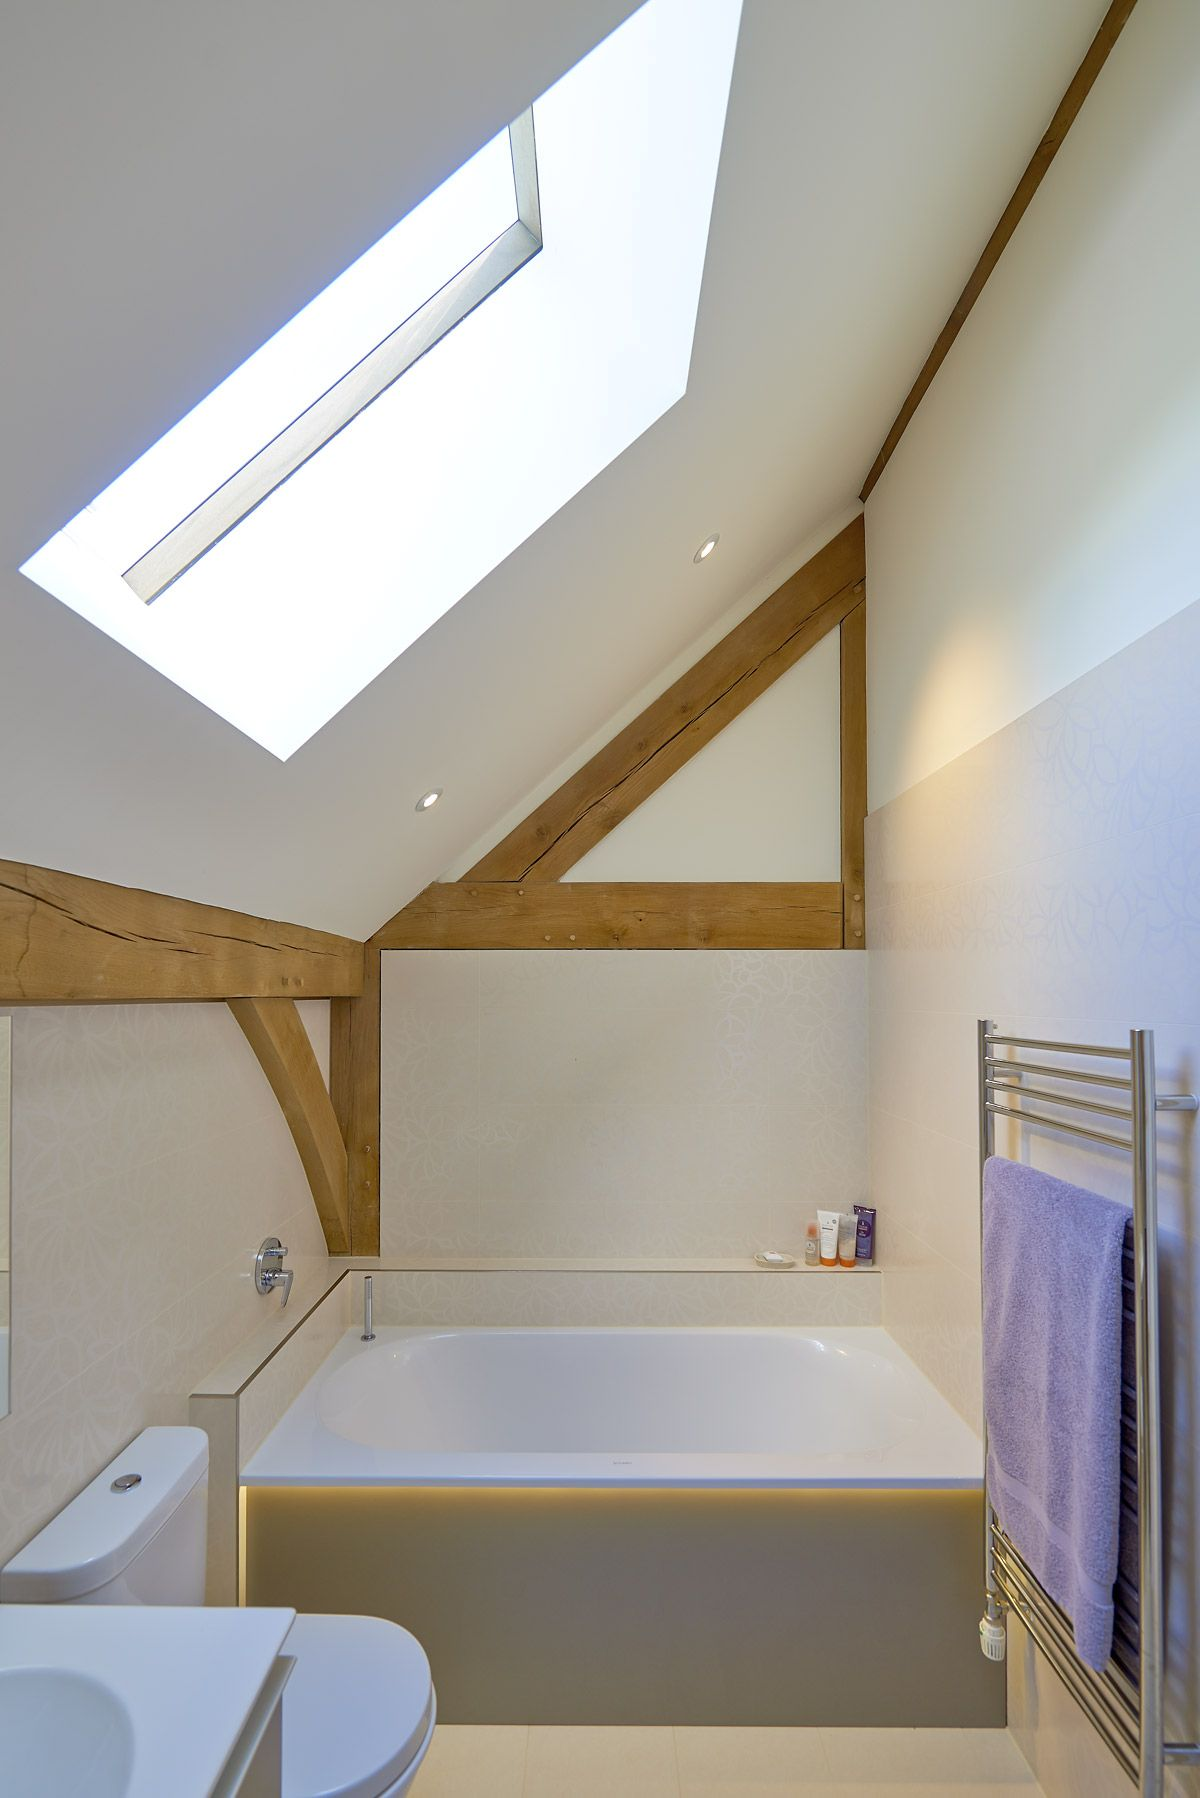 A large square bath tub was used to fill the space between both ...